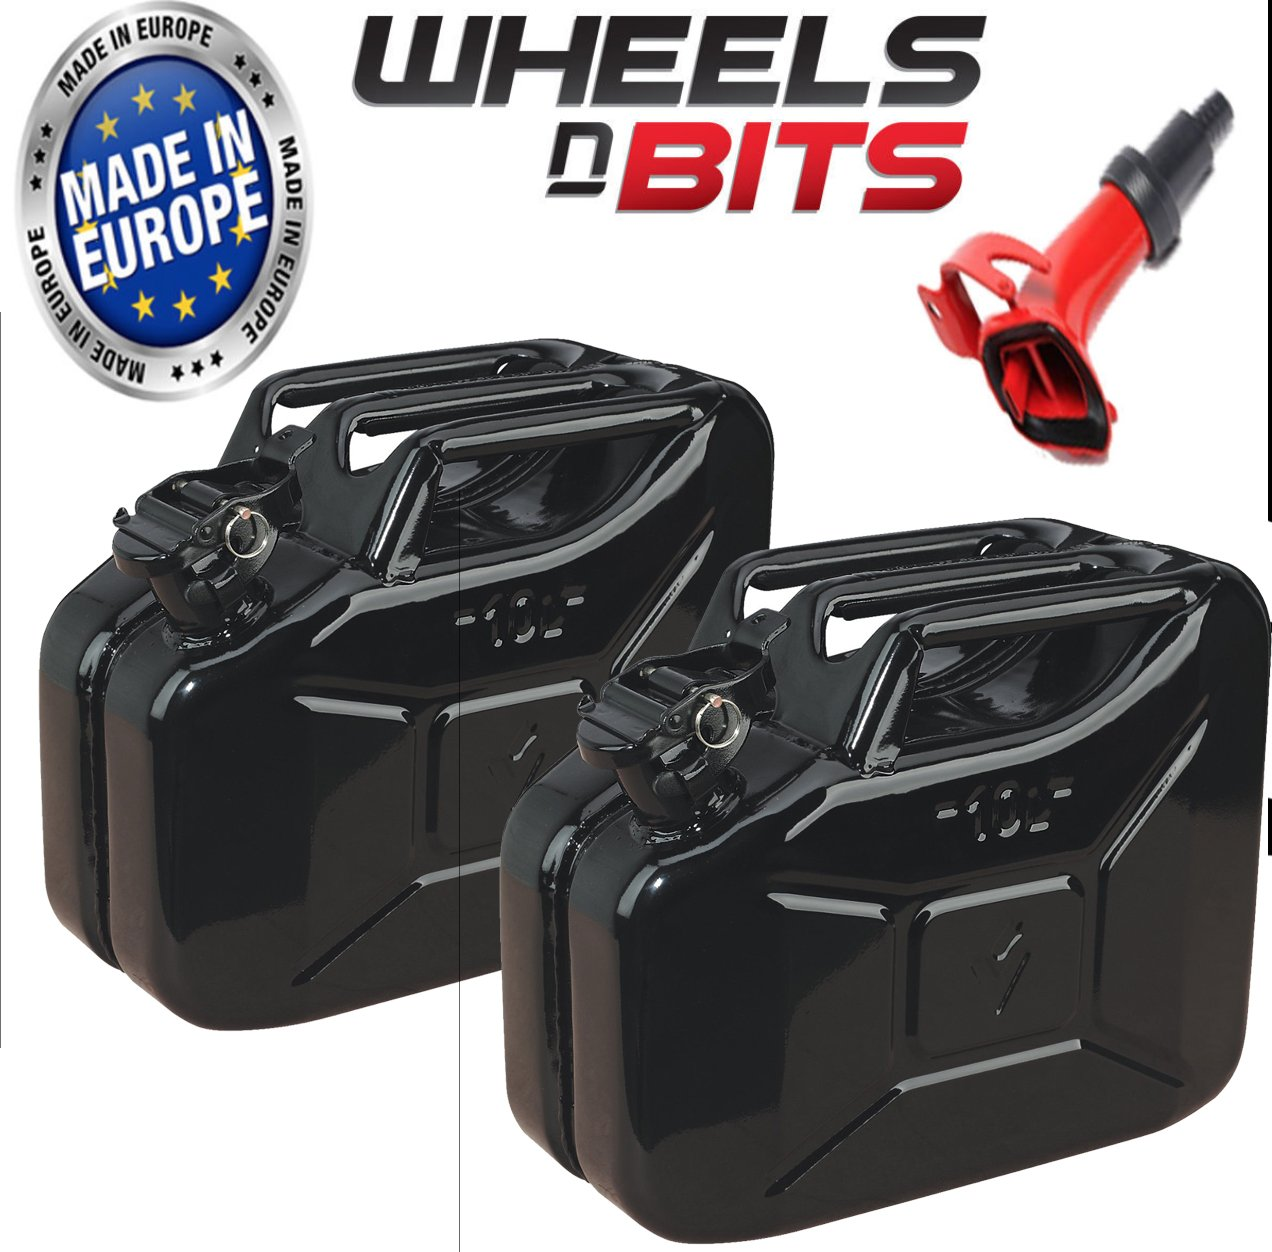 NEW HIGH QUALITY METAL POWER COATED INSIDE AN OUT JERRY CAN 10L LITRE CAN Wheels N Bits